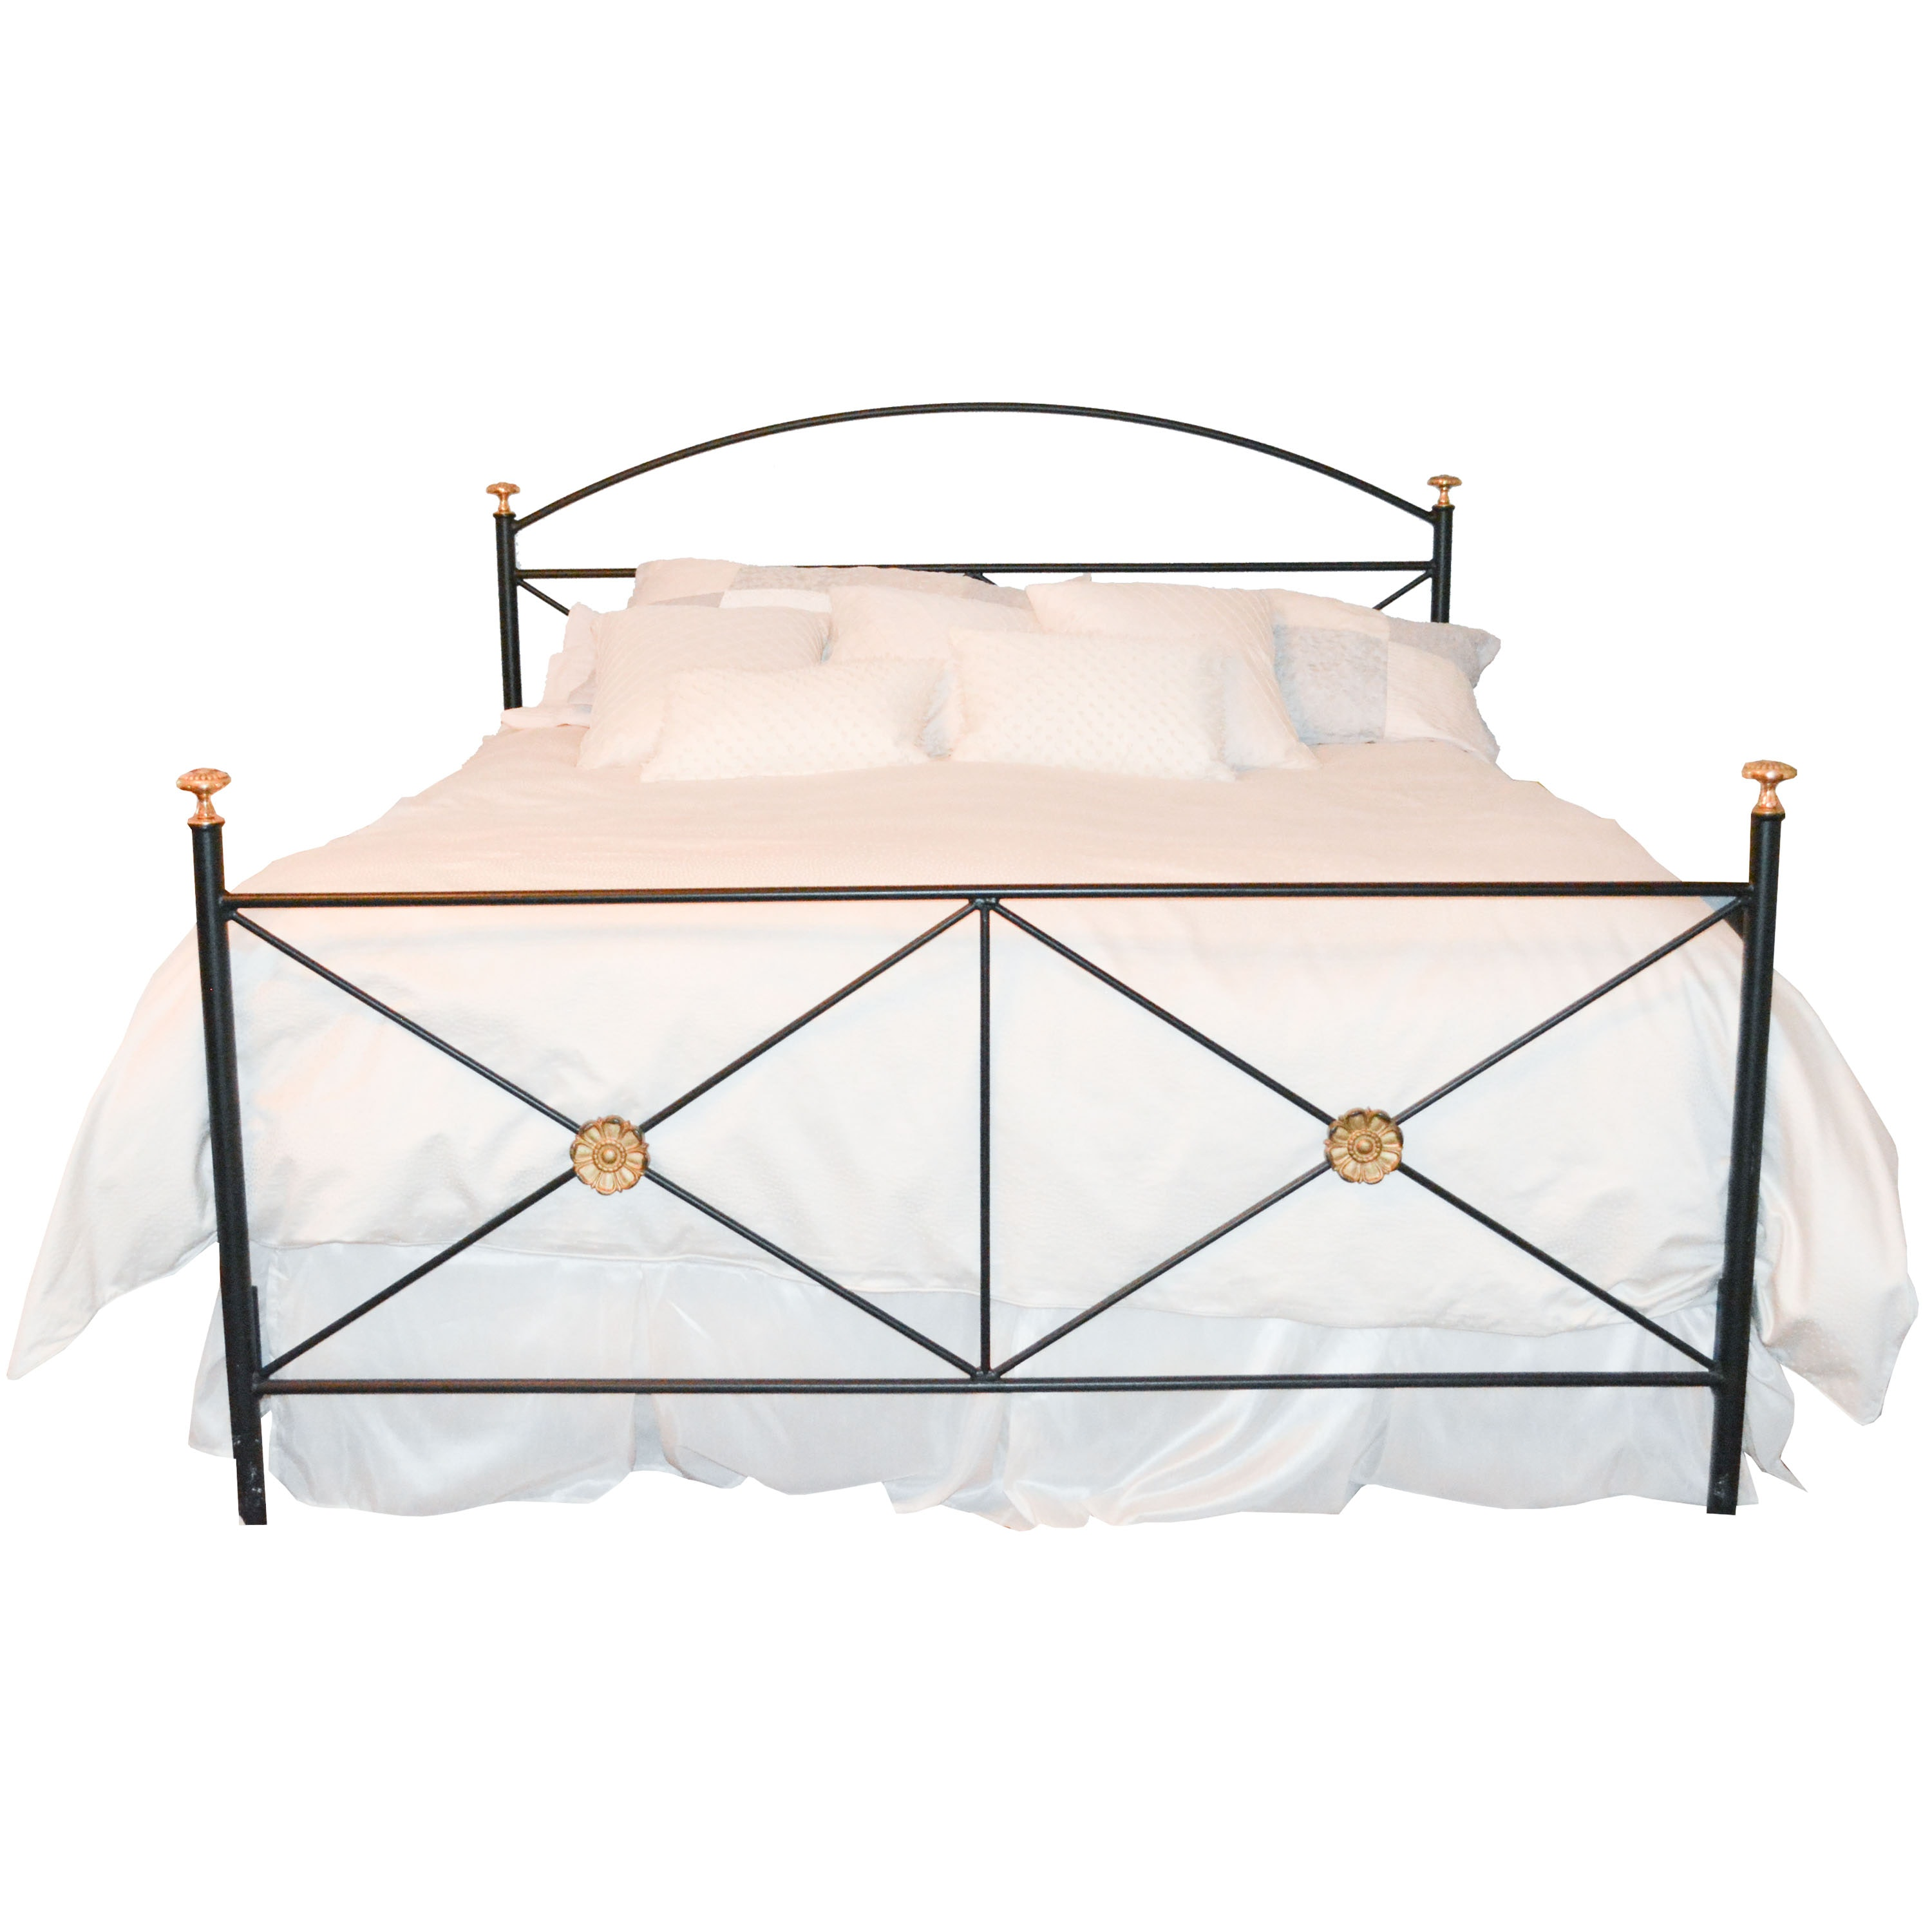 Queen Sized Black Metal Bed Frame with Gold Tone Accents